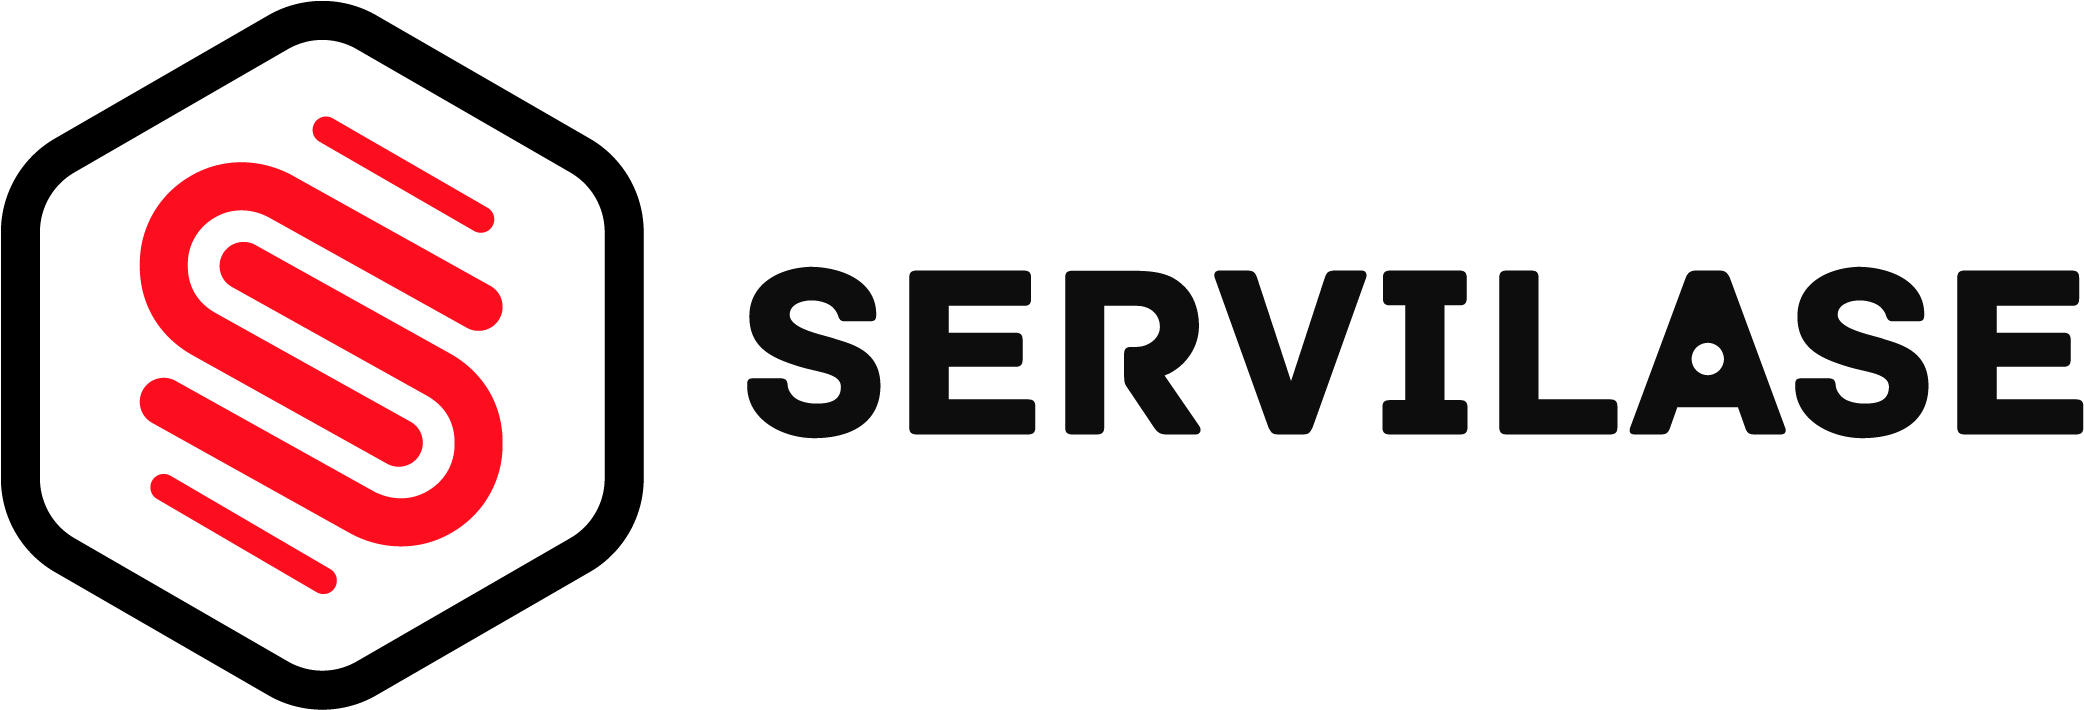 SERVILASE